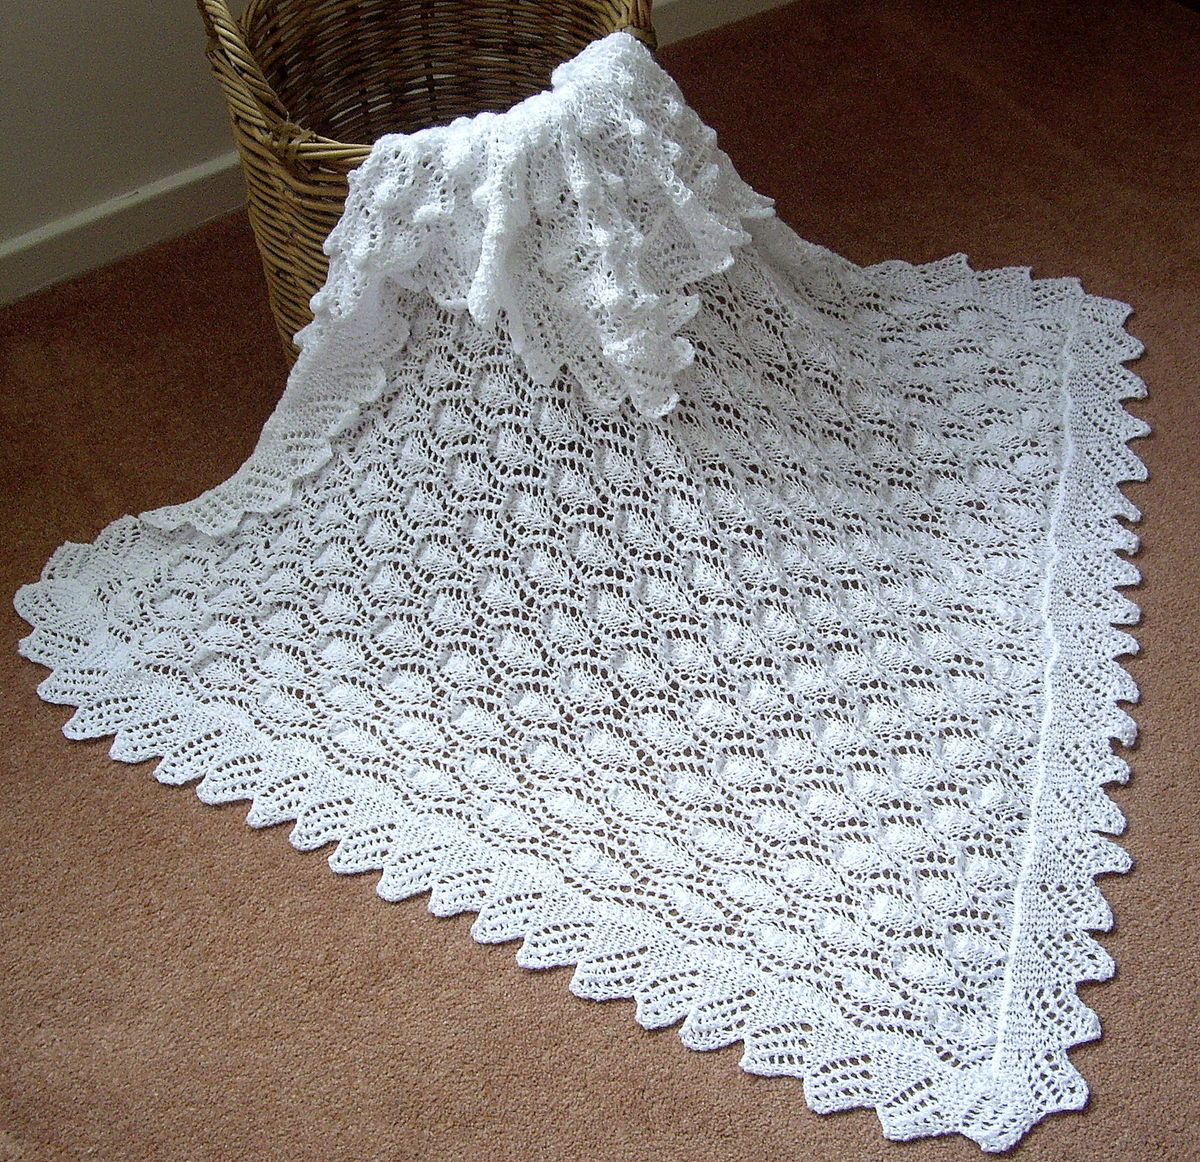 Knitting Crochet Patterns : Beautiful baby shawl blanket hand knitted in a lace